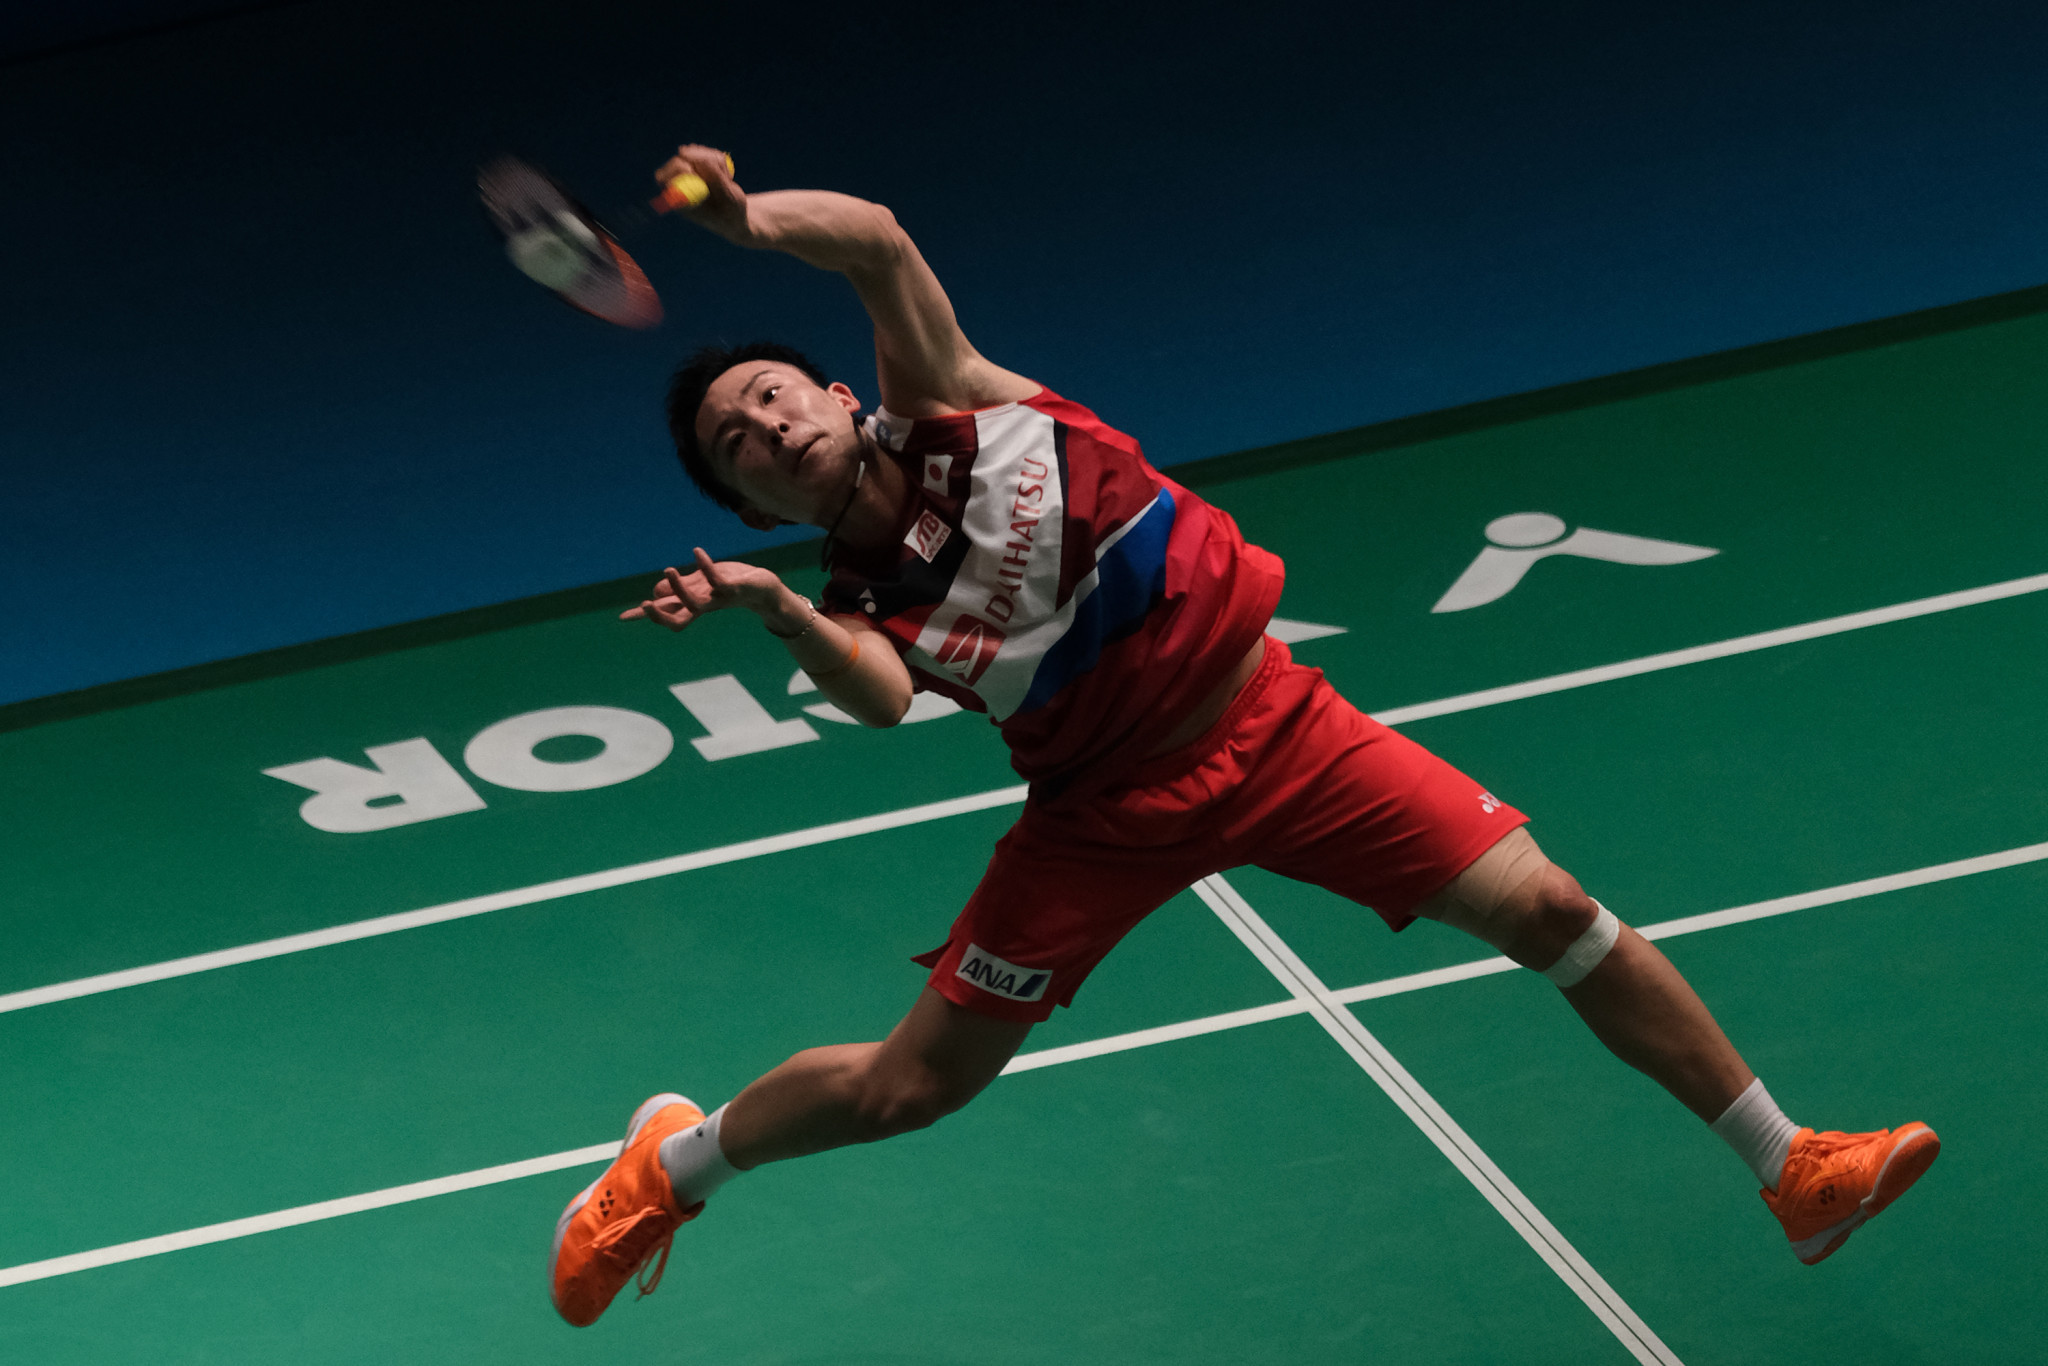 Japan's world number one Kento Momota came through a close first round match at the BWF Singapore Open ©Getty Images